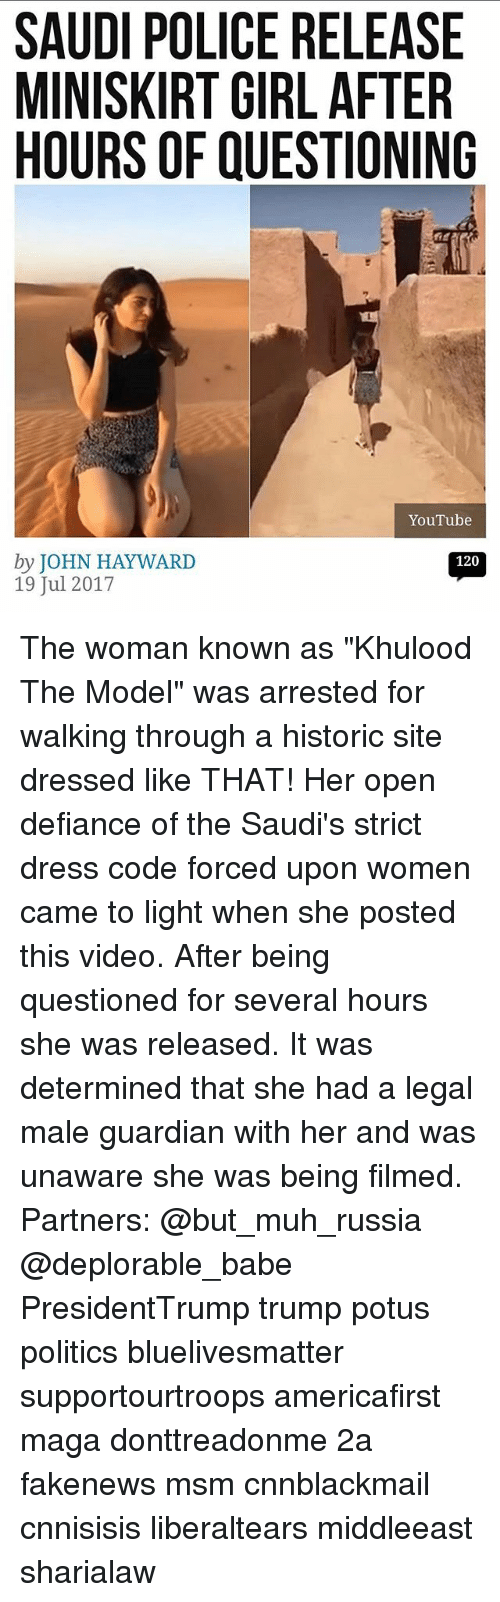 """Cnnblackmail: SAUDI POLICE RELEASE  MINISKIRT GIRL AFTER  HOURS OF QUESTIONING  YouTube  by JOHN HAYWARD  19 Jul 2017  120 The woman known as """"Khulood The Model"""" was arrested for walking through a historic site dressed like THAT! Her open defiance of the Saudi's strict dress code forced upon women came to light when she posted this video. After being questioned for several hours she was released. It was determined that she had a legal male guardian with her and was unaware she was being filmed. Partners: @but_muh_russia @deplorable_babe PresidentTrump trump potus politics bluelivesmatter supportourtroops americafirst maga donttreadonme 2a fakenews msm cnnblackmail cnnisisis liberaltears middleeast sharialaw"""